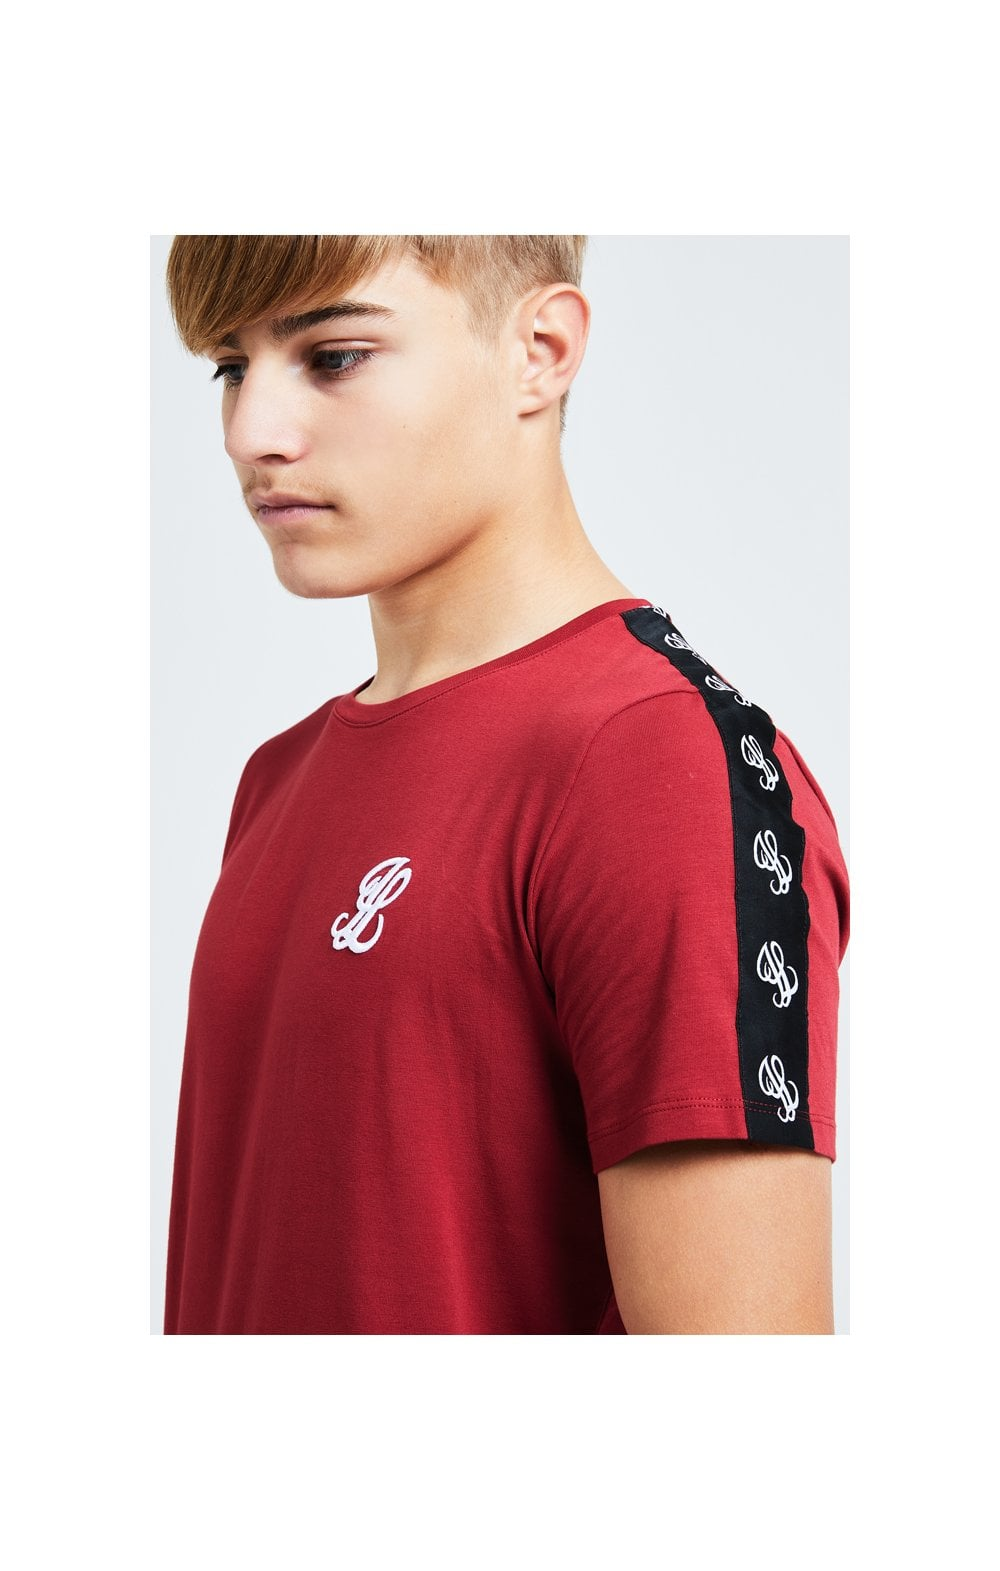 Illusive London Gravity Tape Tee - Red (1)